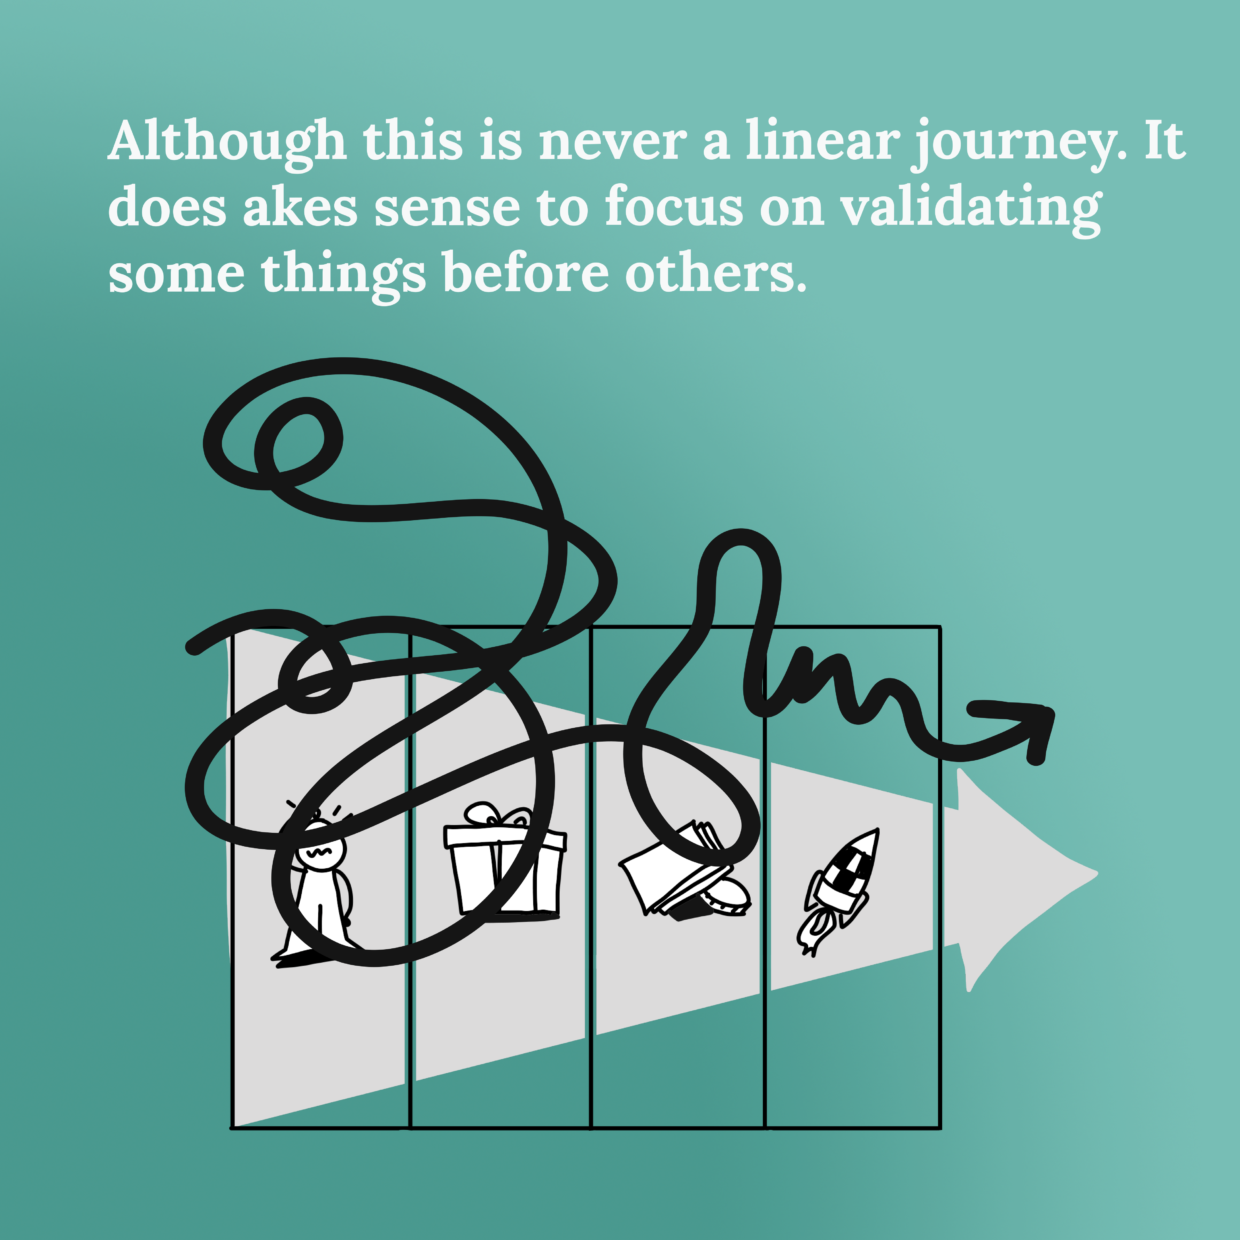 The logical hierarchical steps in validating a new business model